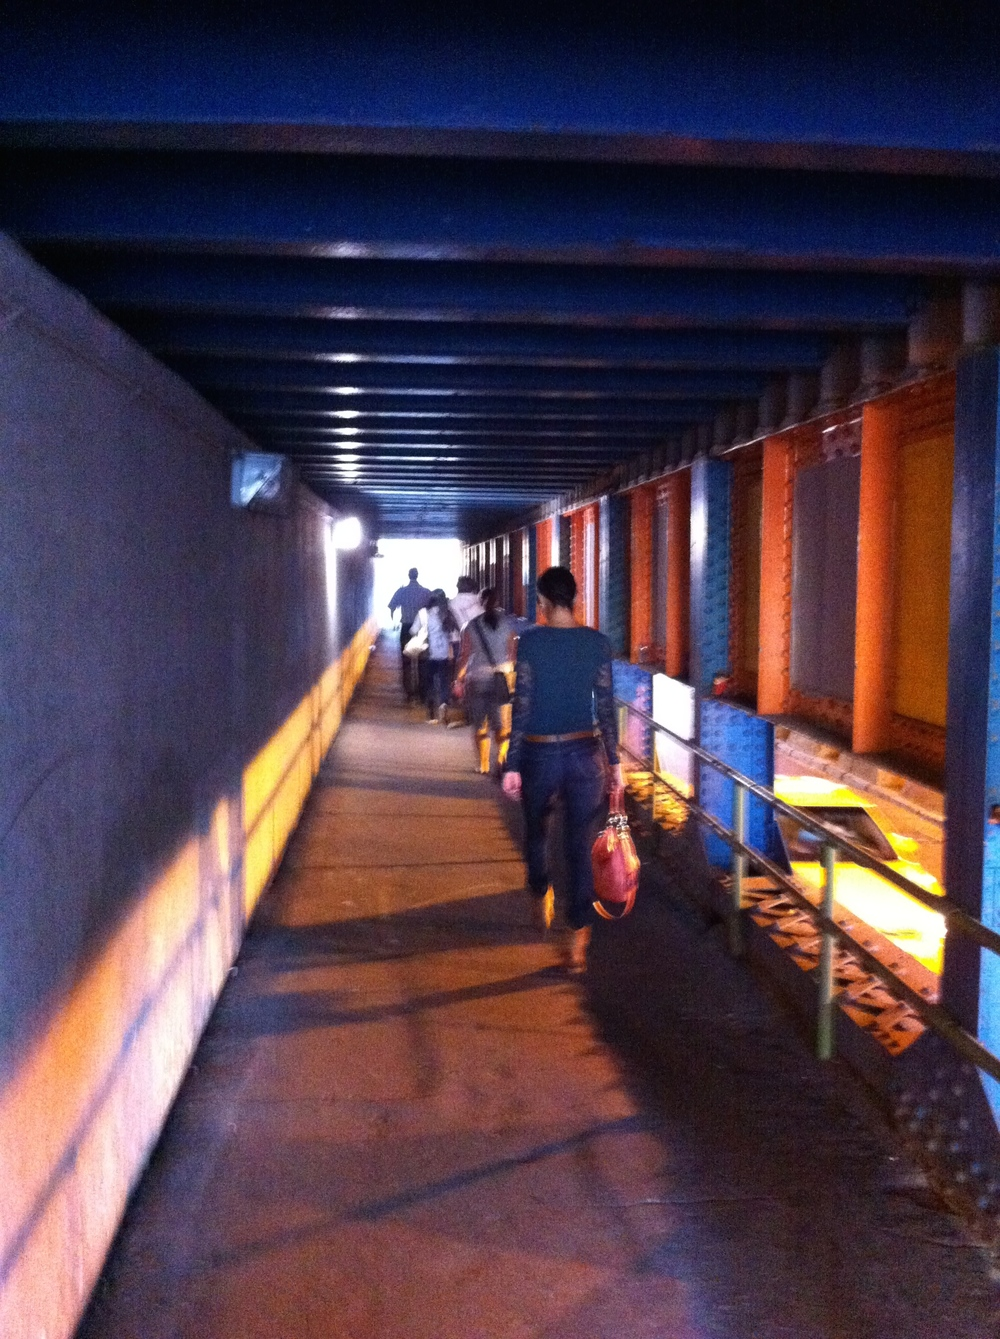 Unfortunately dark and dingy underpasses that often link one downtown district to another are not attractive to anyone.